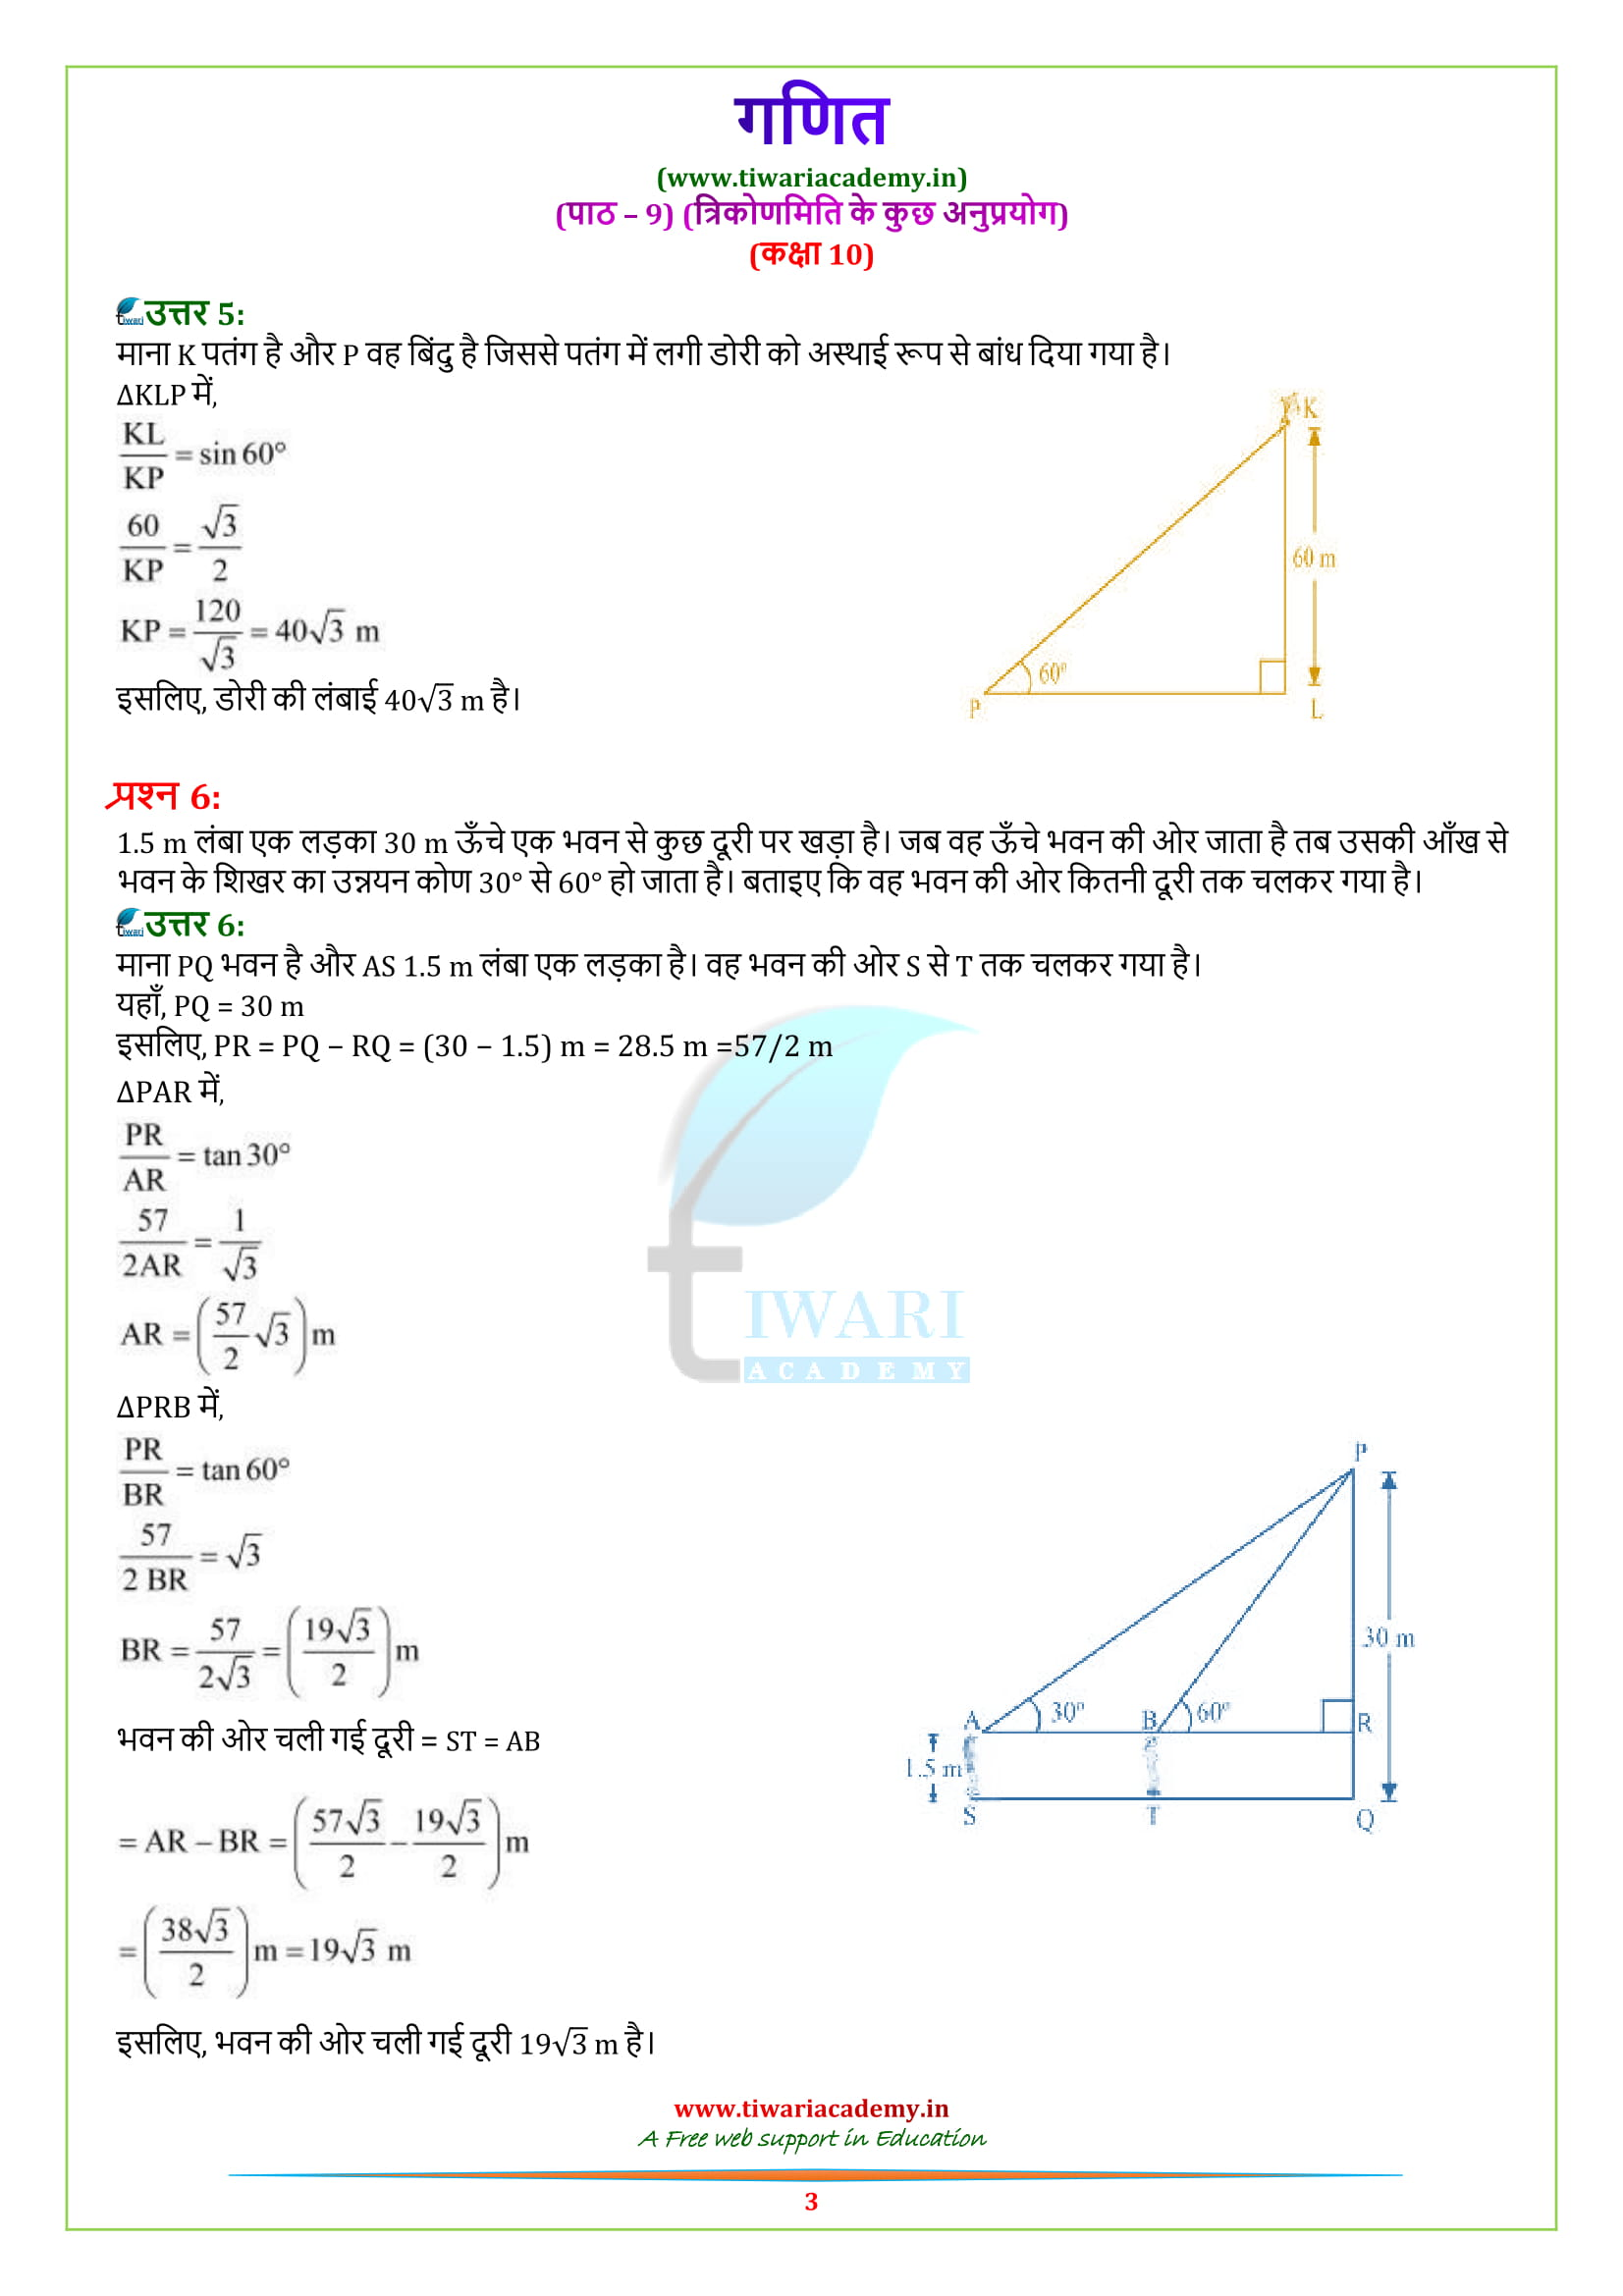 Class 10 Maths Exercise 9.1 question 6 and 7 in pdf download